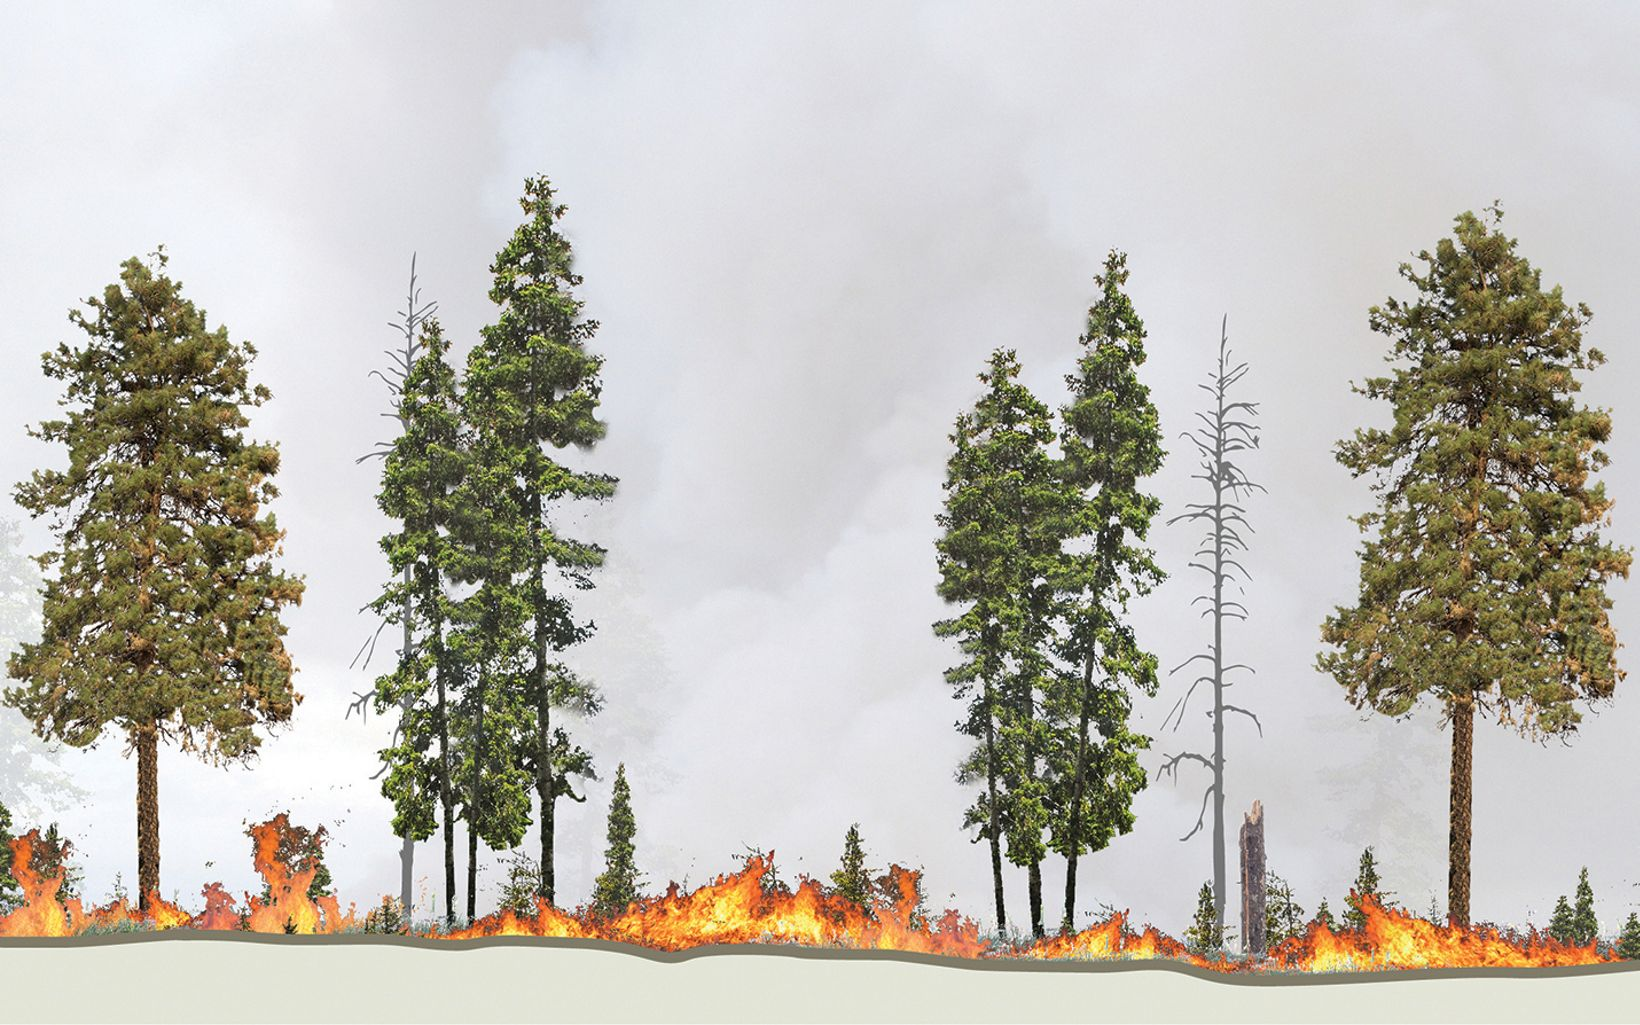 Fire in thinned forest